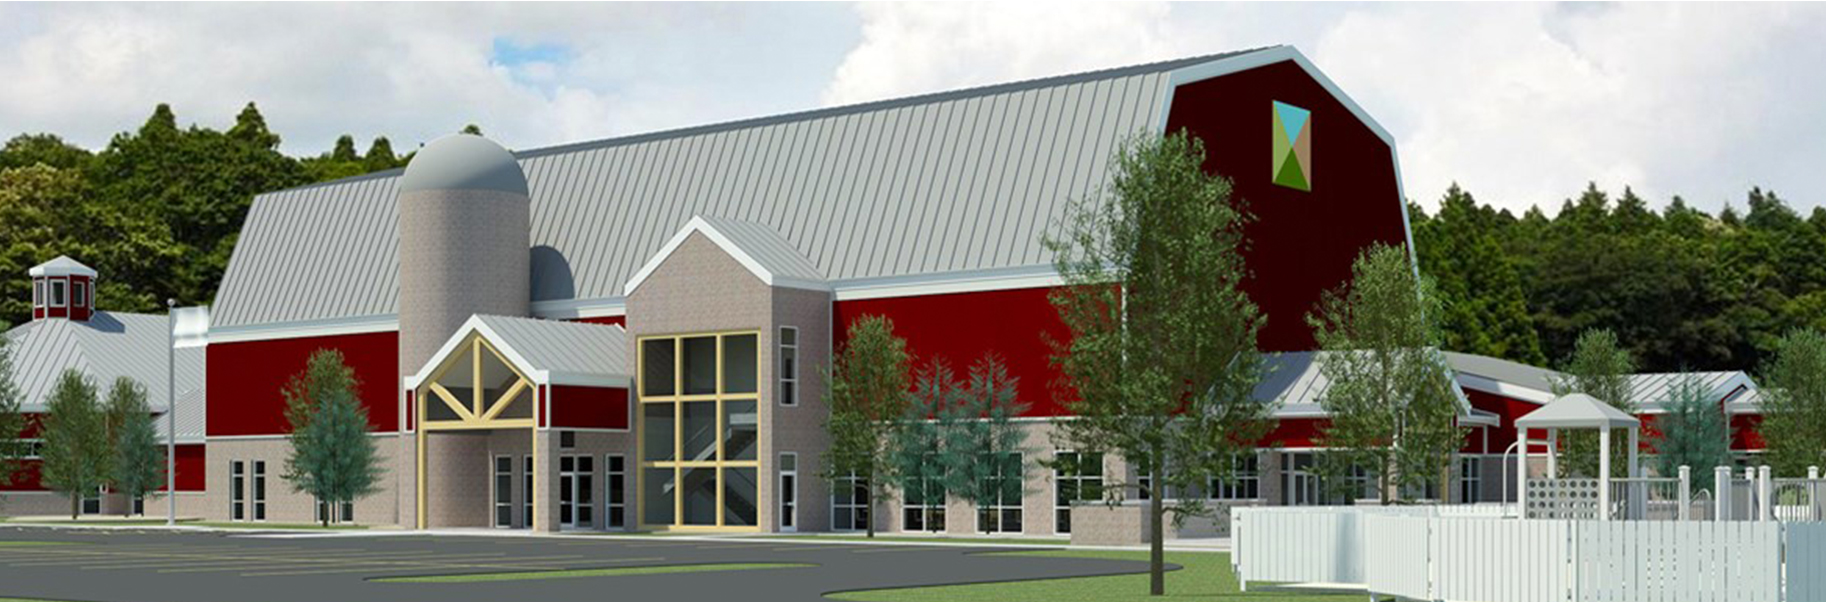 Bayland Buildings, Inc. Makes $100,000 Gift to Wisconsin Agricultural Education Center